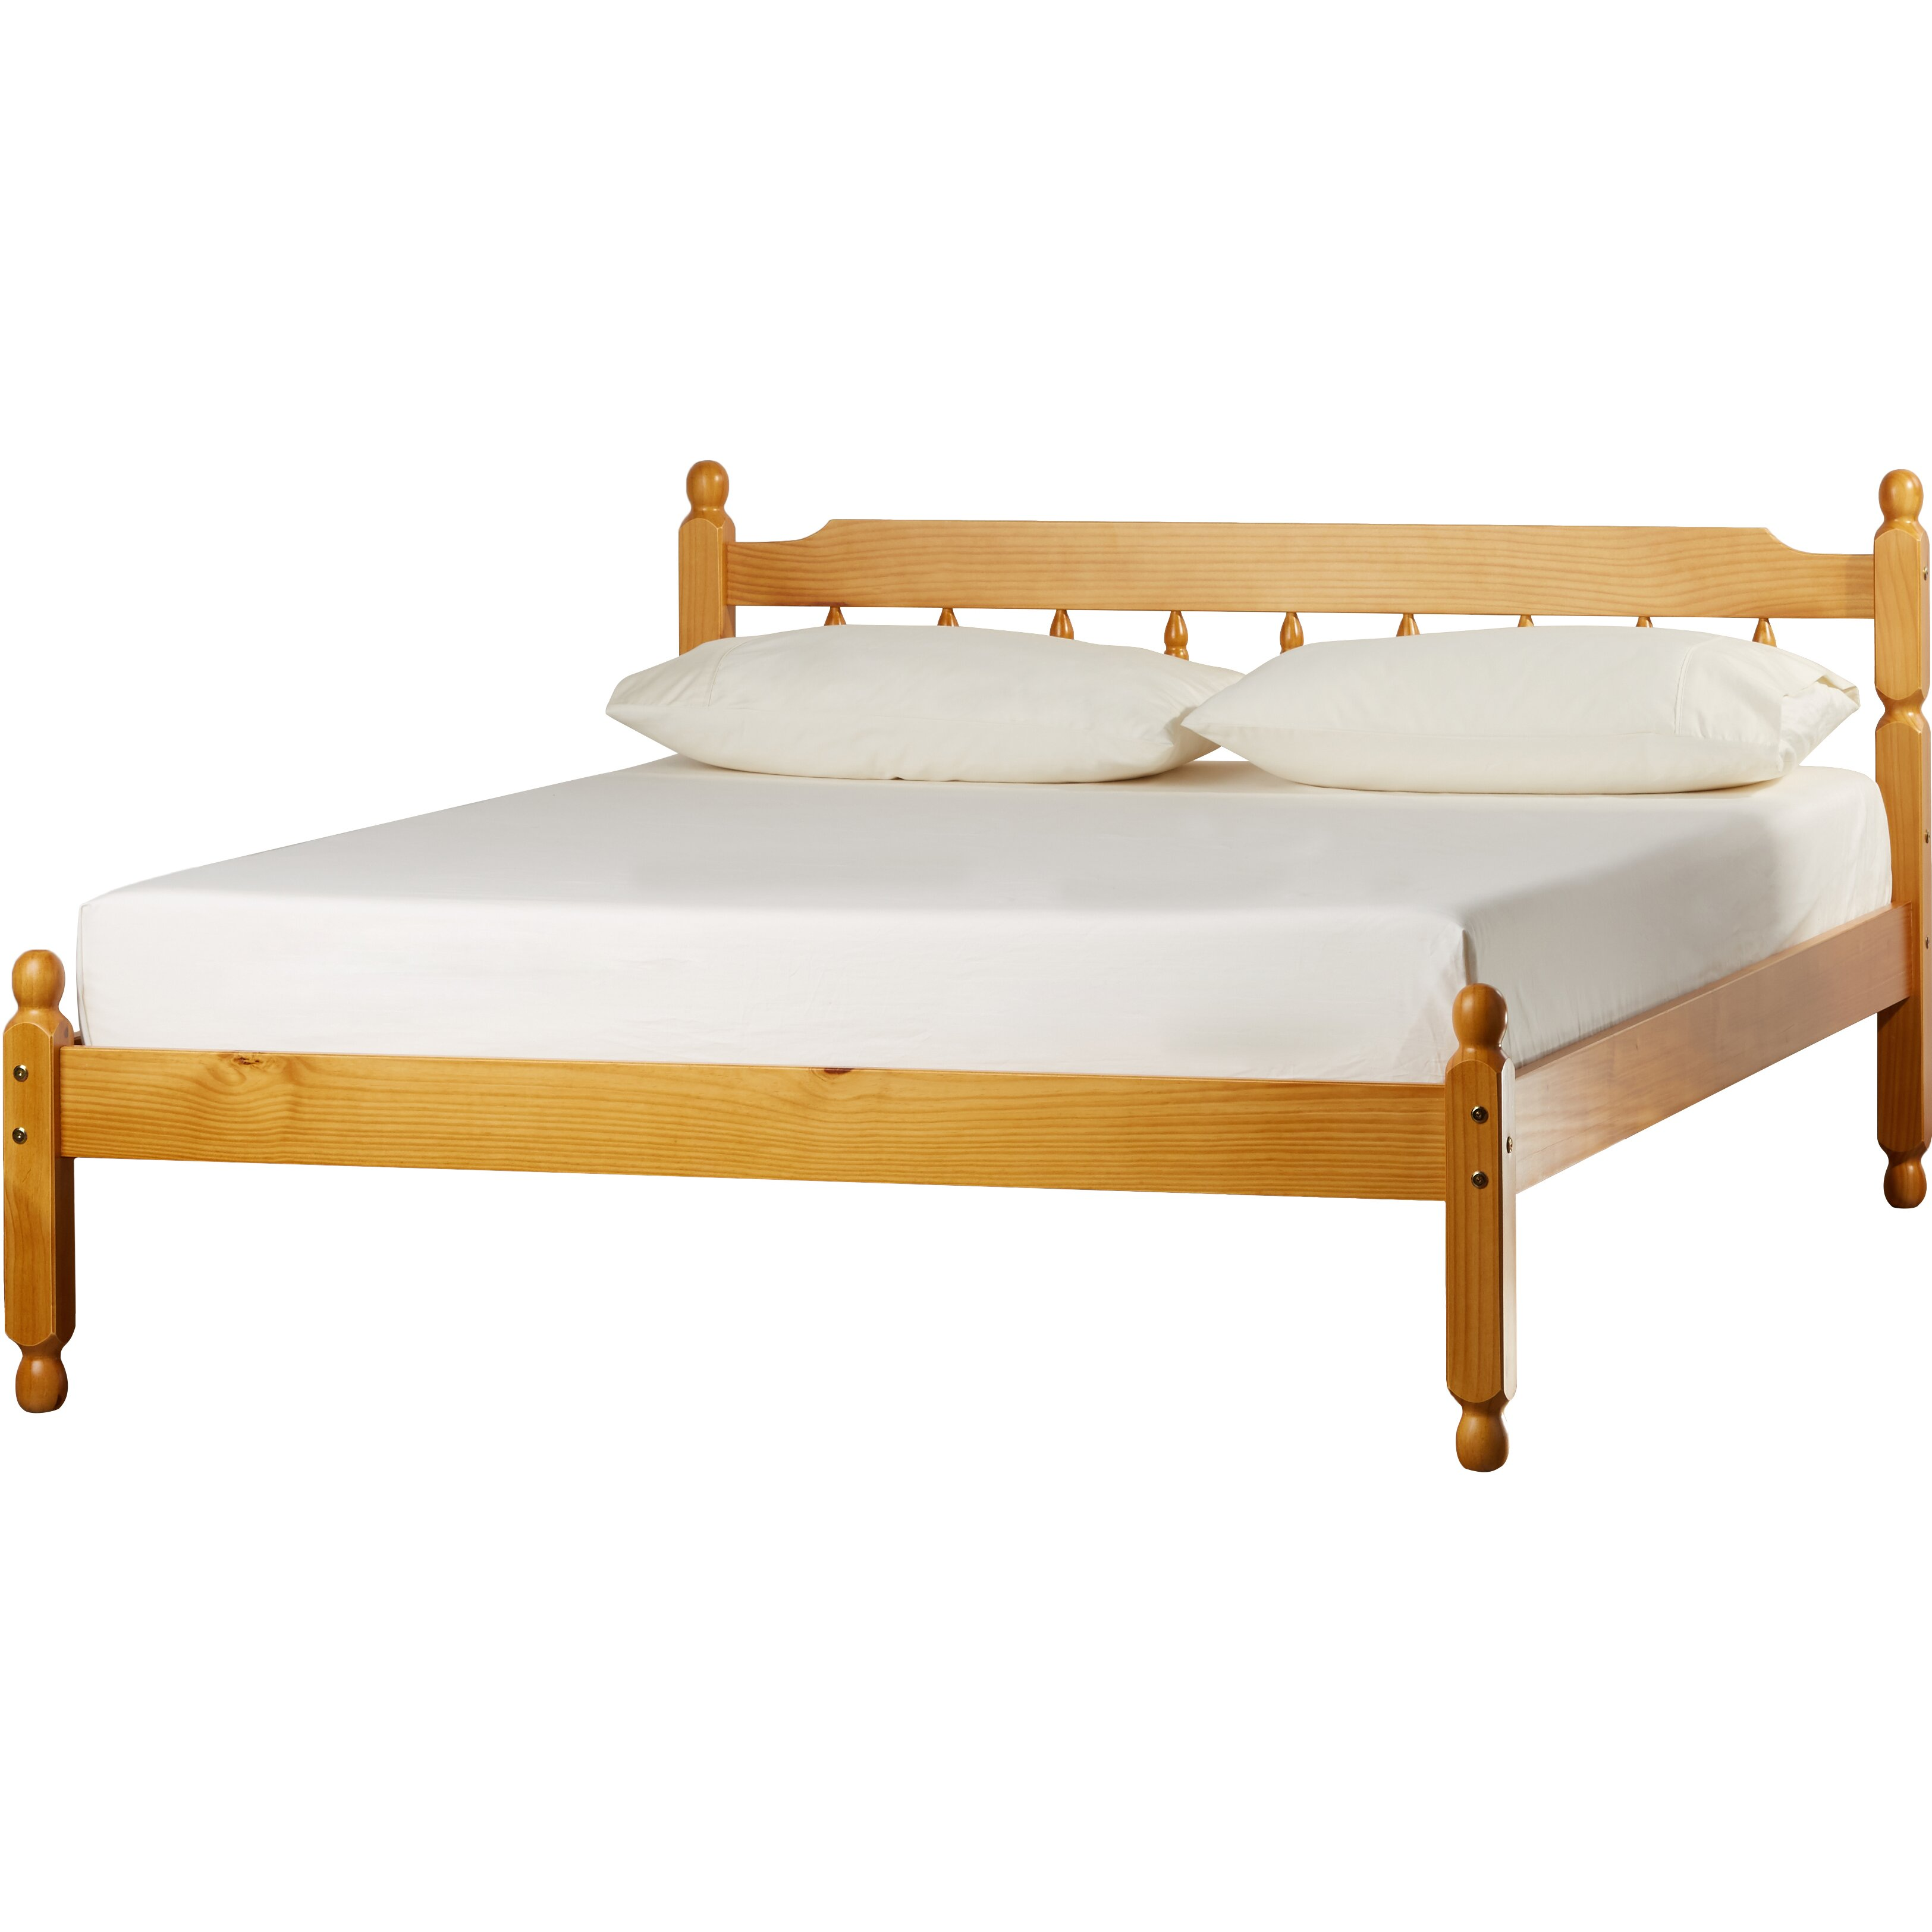 Bed Frame Reviews - Ikea Trysil Bed Frame Review Ikea ...